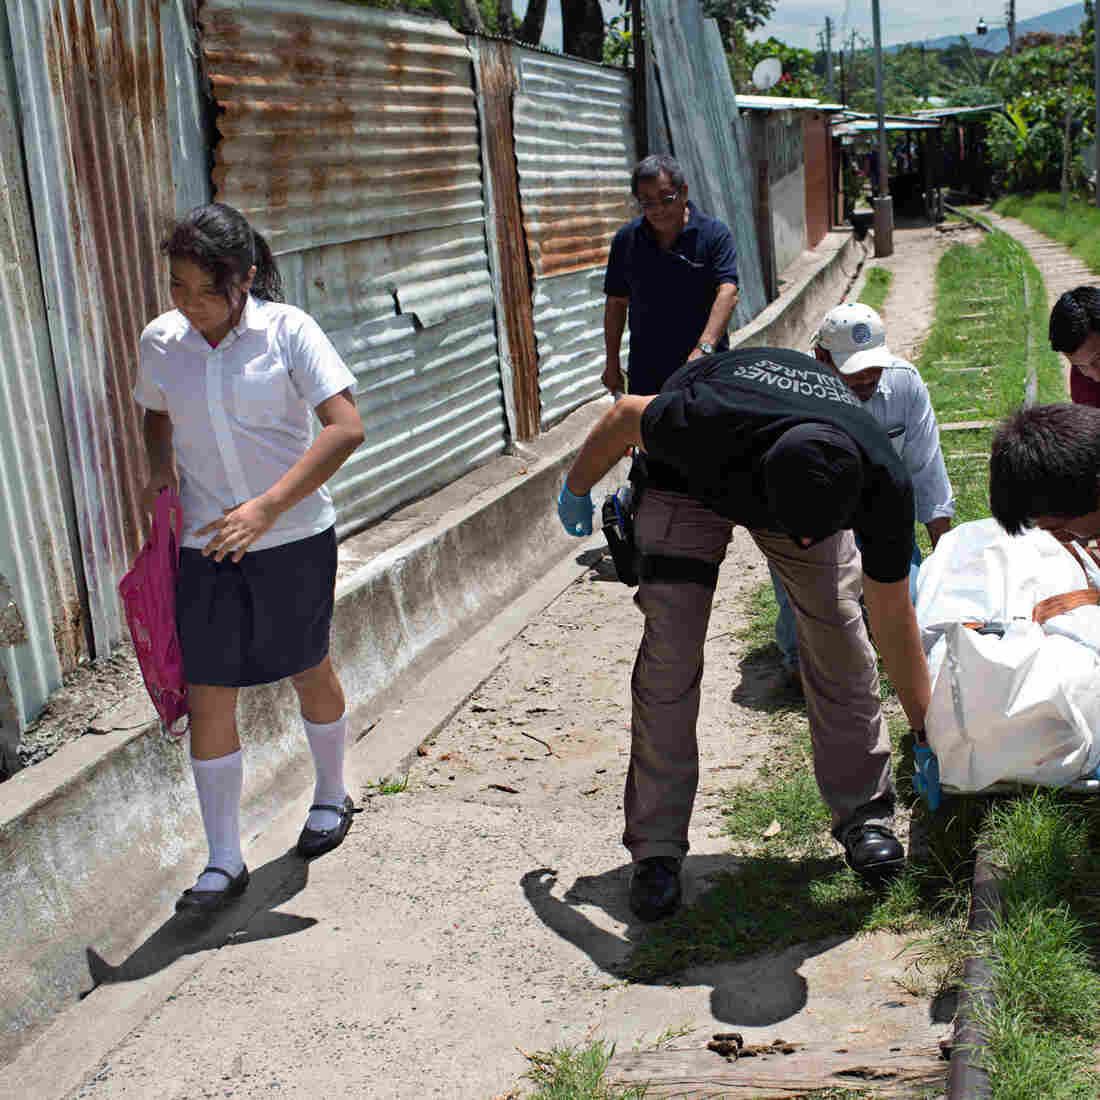 The Surreal Reasons Girls Are Disappearing In El Salvador: #15Girls